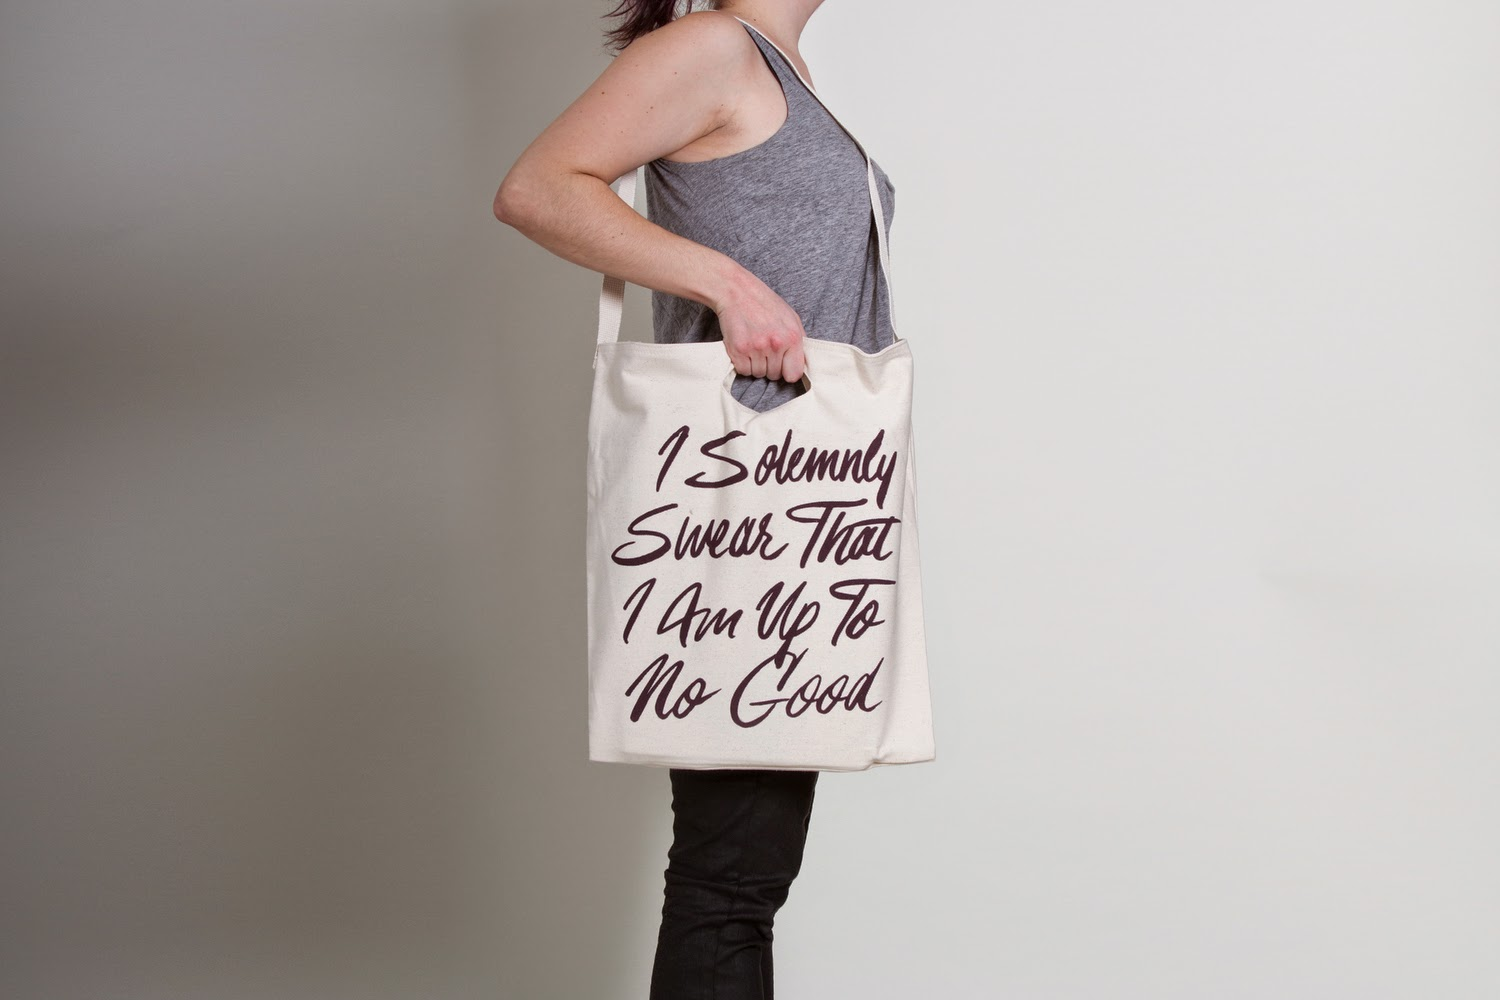 I solemnly swear that I am up to no good - Harry Potter - Jordan Dene tote bag - Hello, Handbag